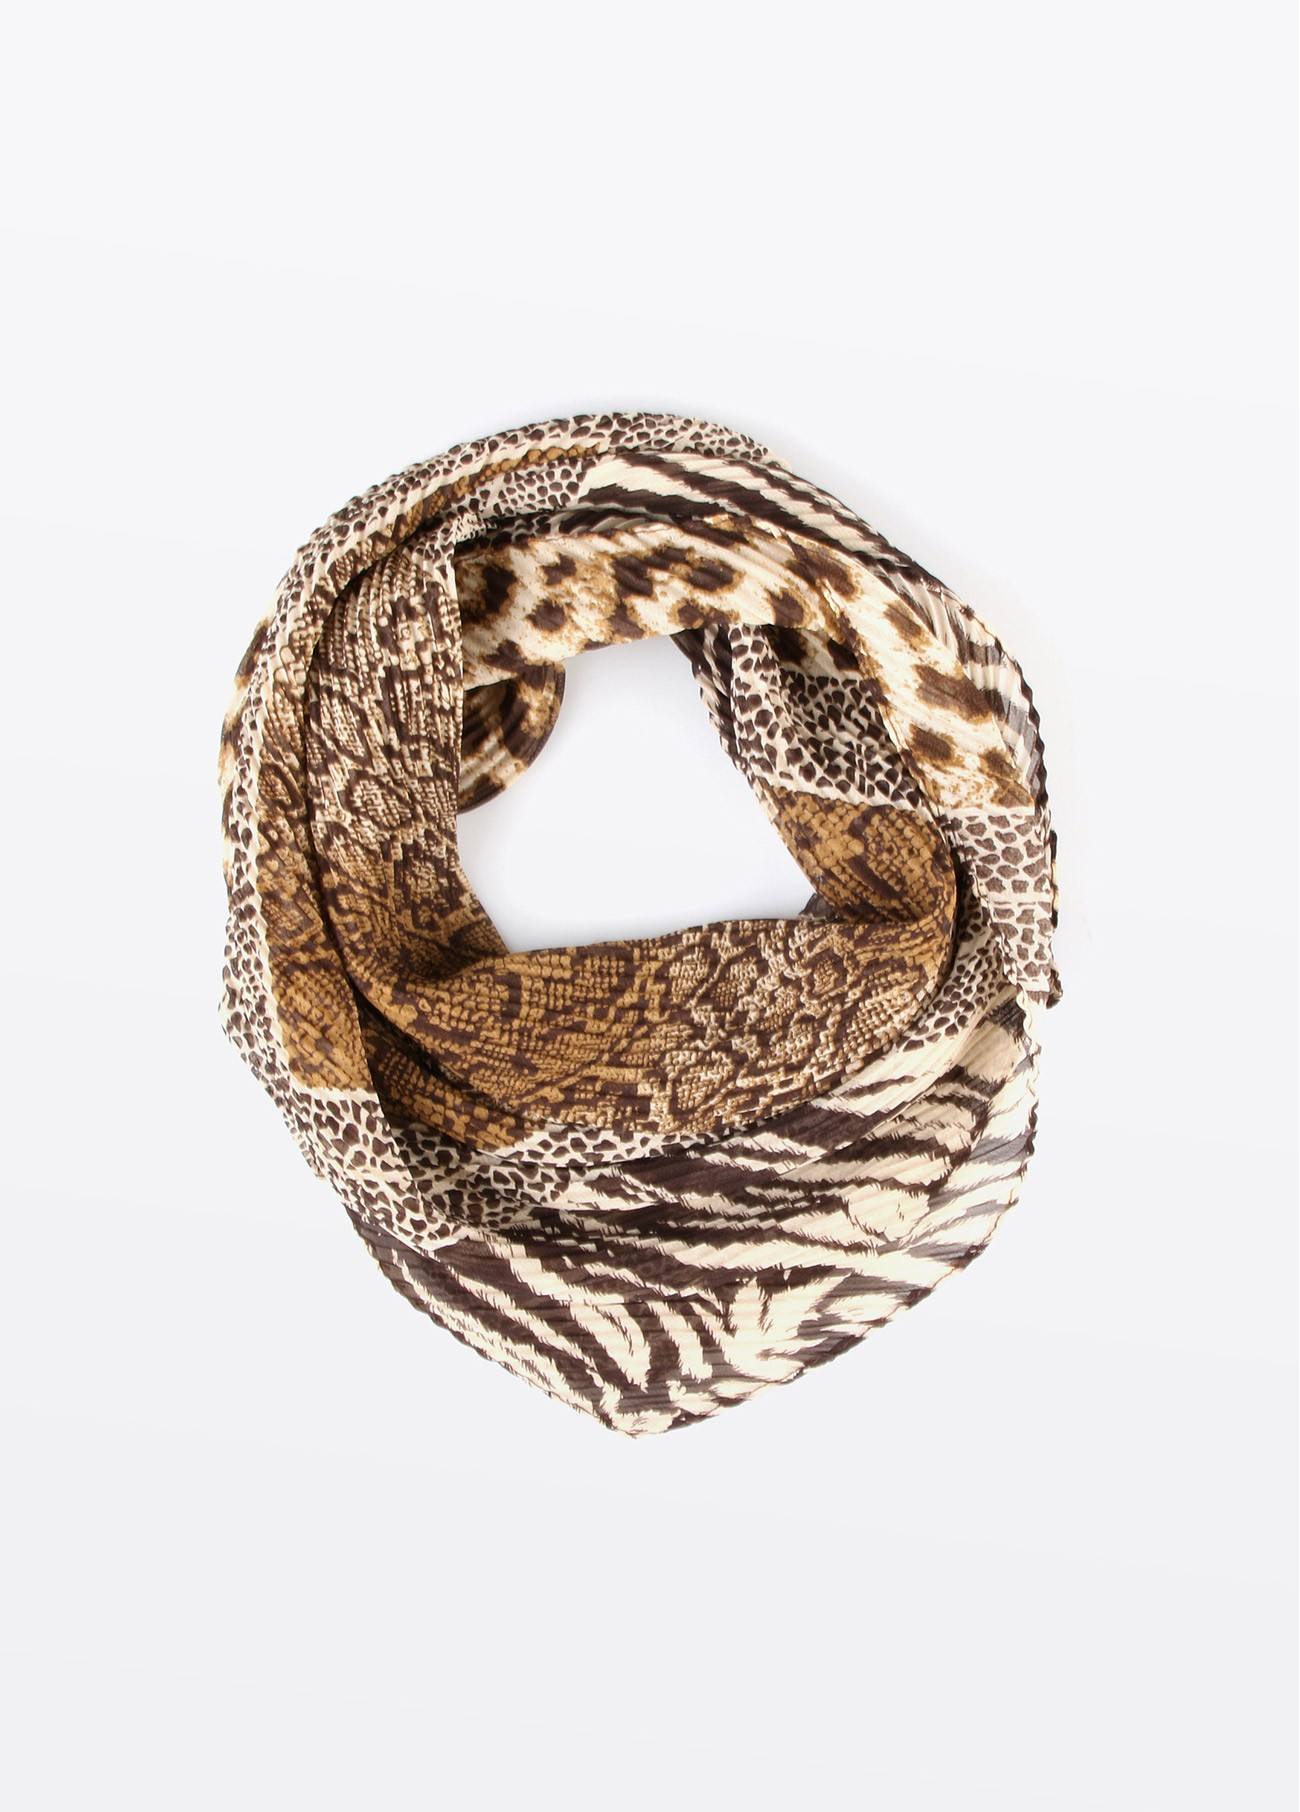 Pañuelo cuello estampado patch serpiente, estampado